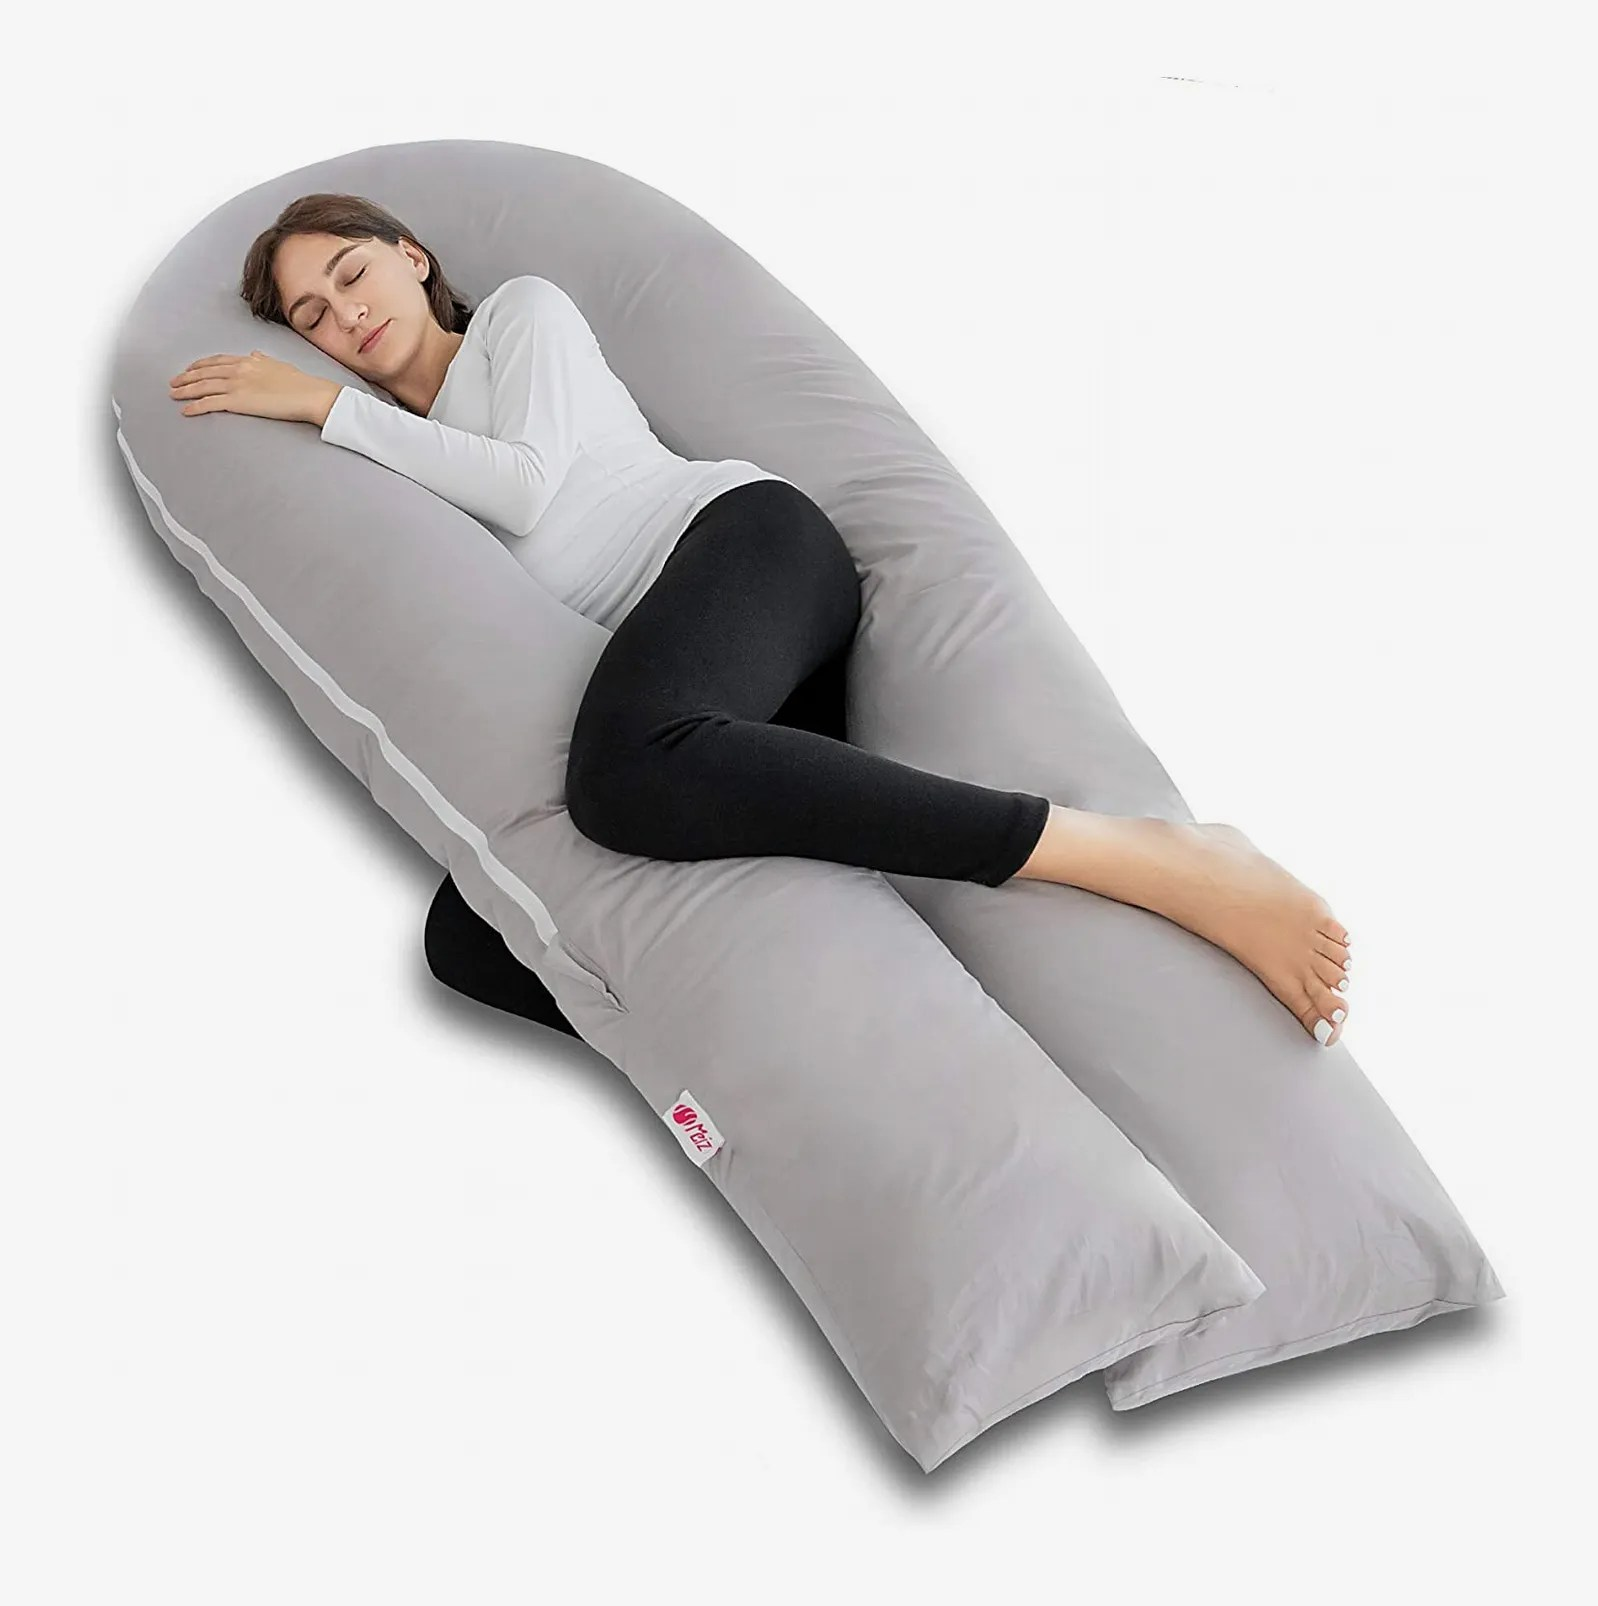 https nymag com strategist article best pregnancy pillows html